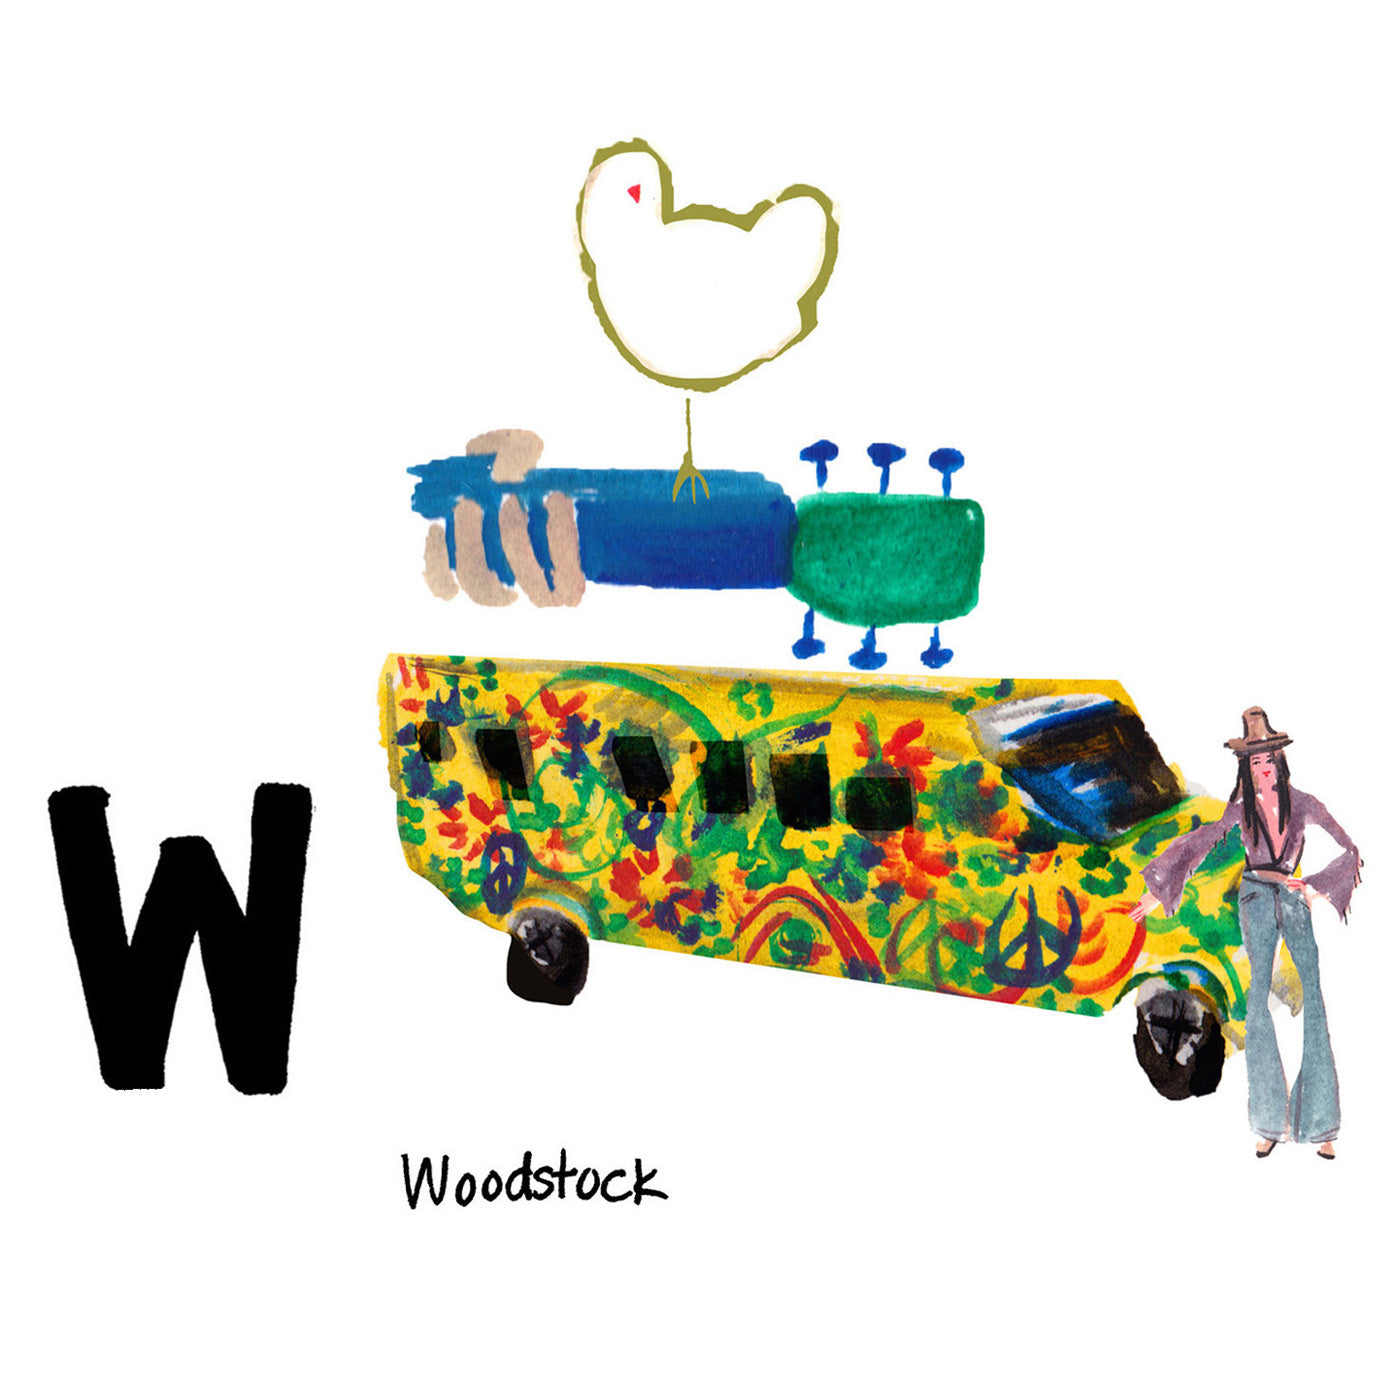 W is for Woodstock. The music festival was hosted in 1969 by a dairy farm in Bethel, NY after the towns of Woodstock and Wallkill refused. It lasted four days and had around 400,000 attendees.